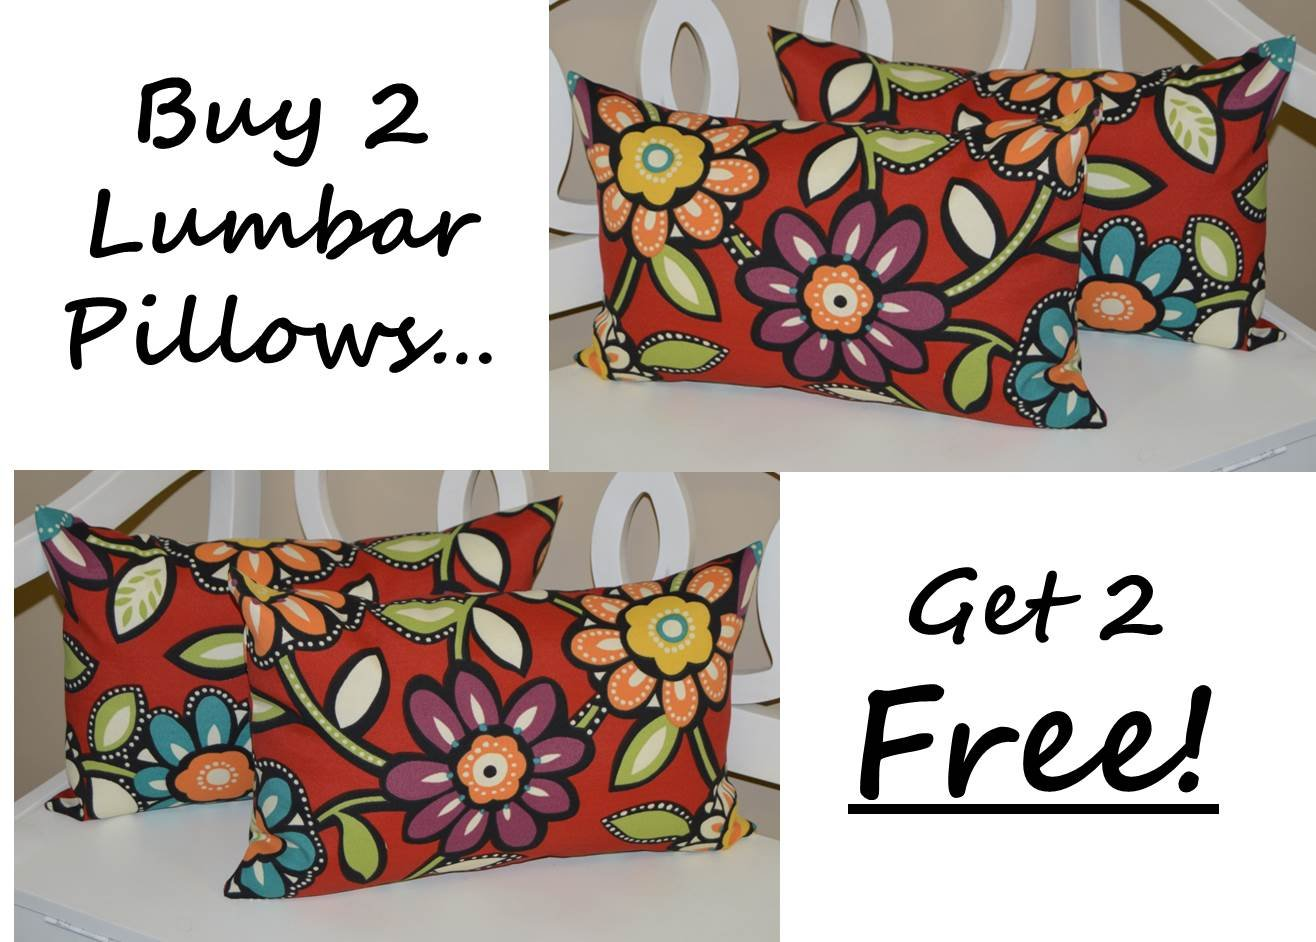 Set of 2 - Indoor / Outdoor Decorative Lumbar / Rectangle Pillows + 2 Free - Red, Yellow, Blue, Green Contemporary Floral by Resort Spa Home Decor